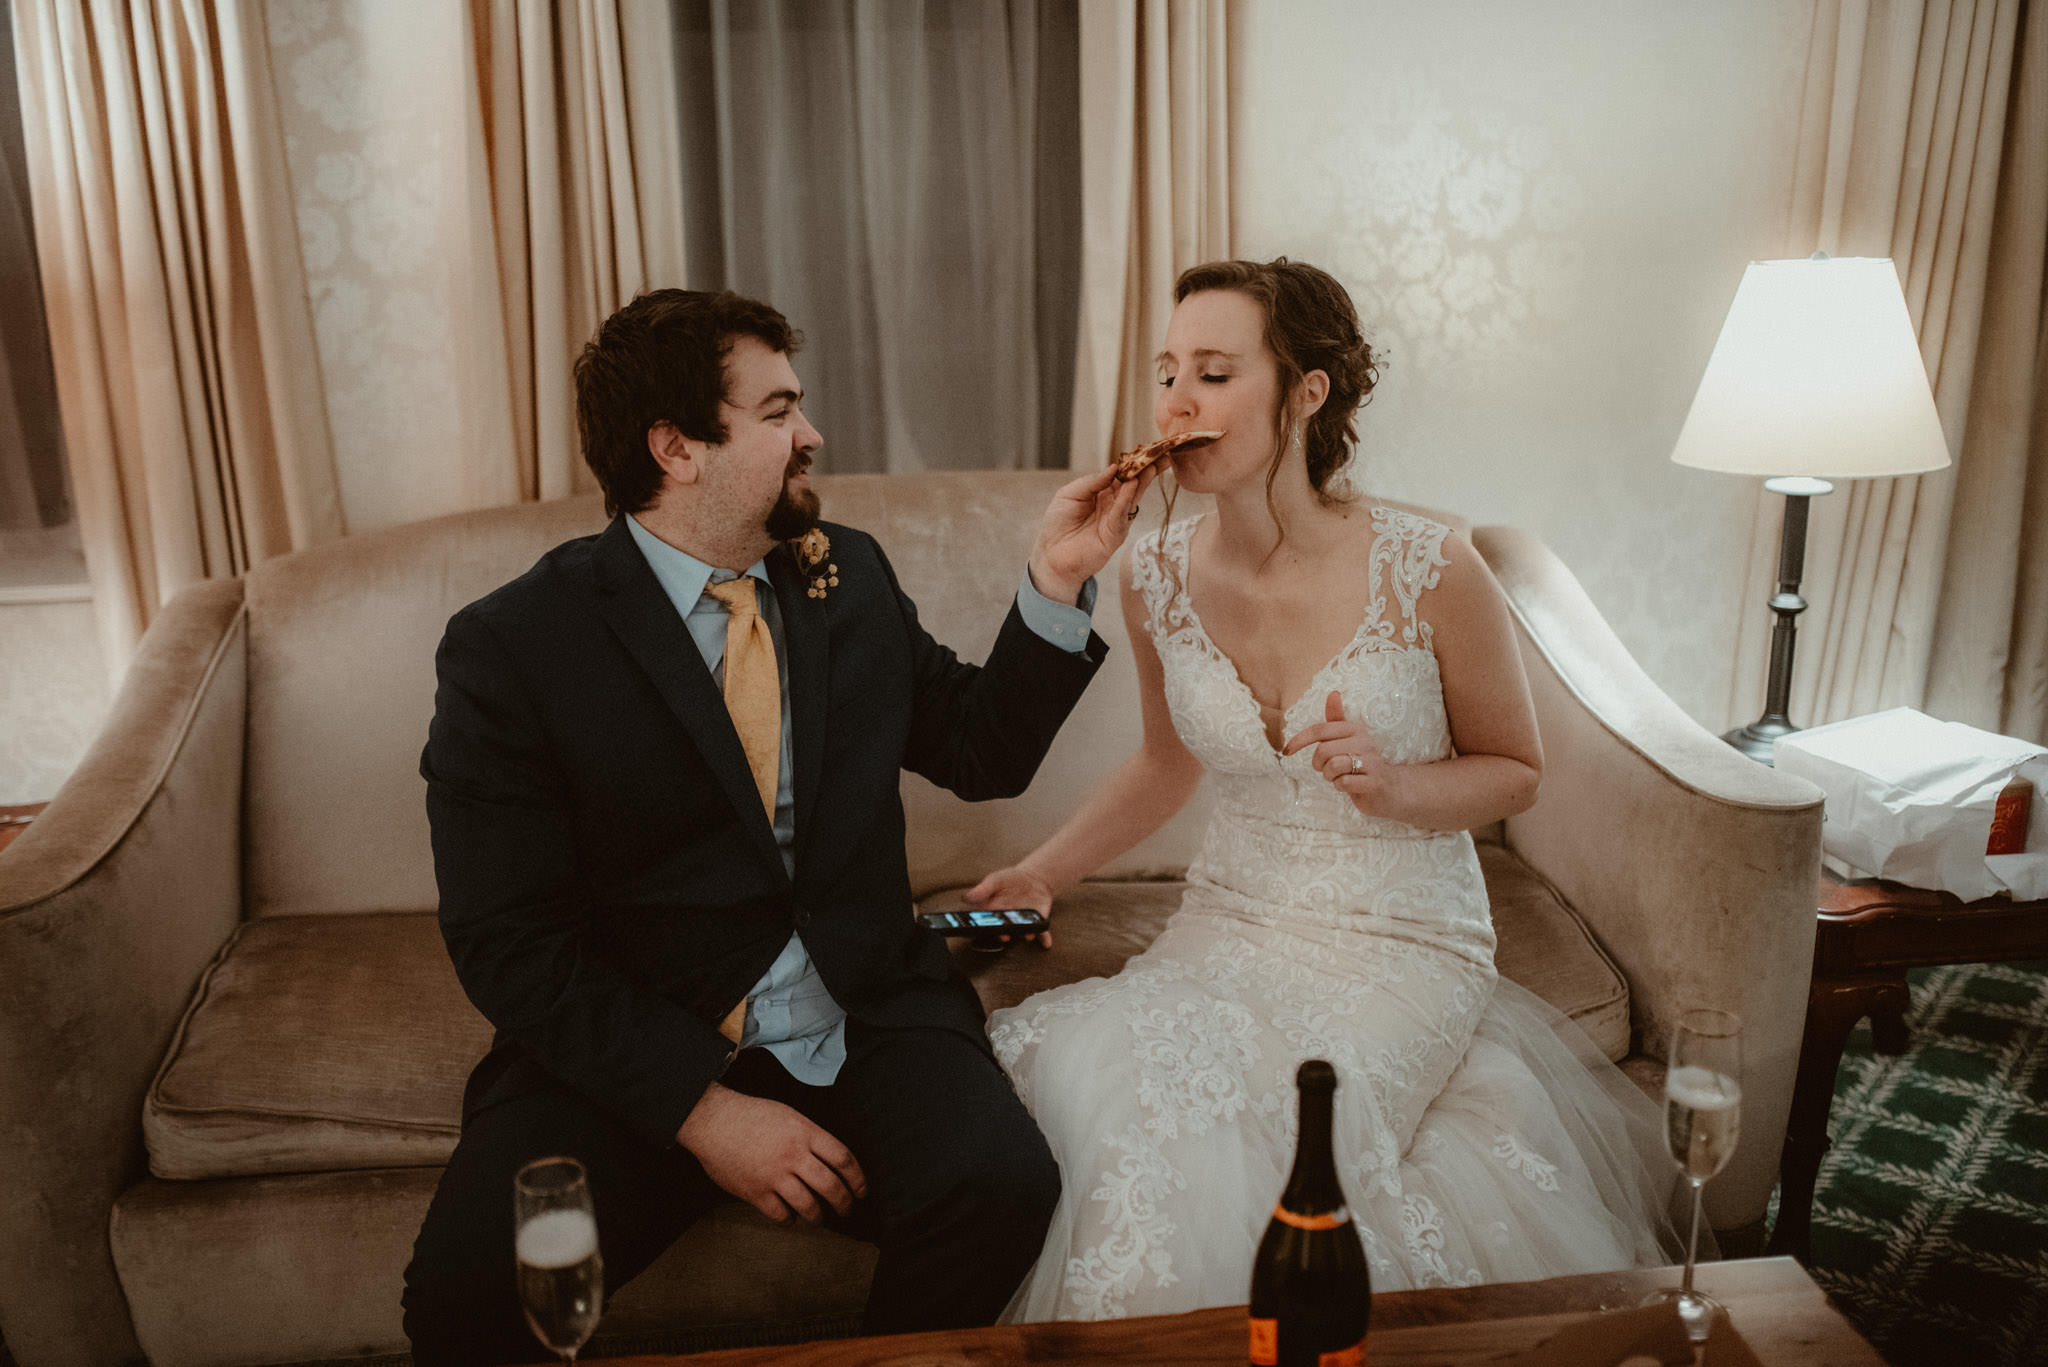 Wine and pizza with the bride and groom at the Landmark Inn